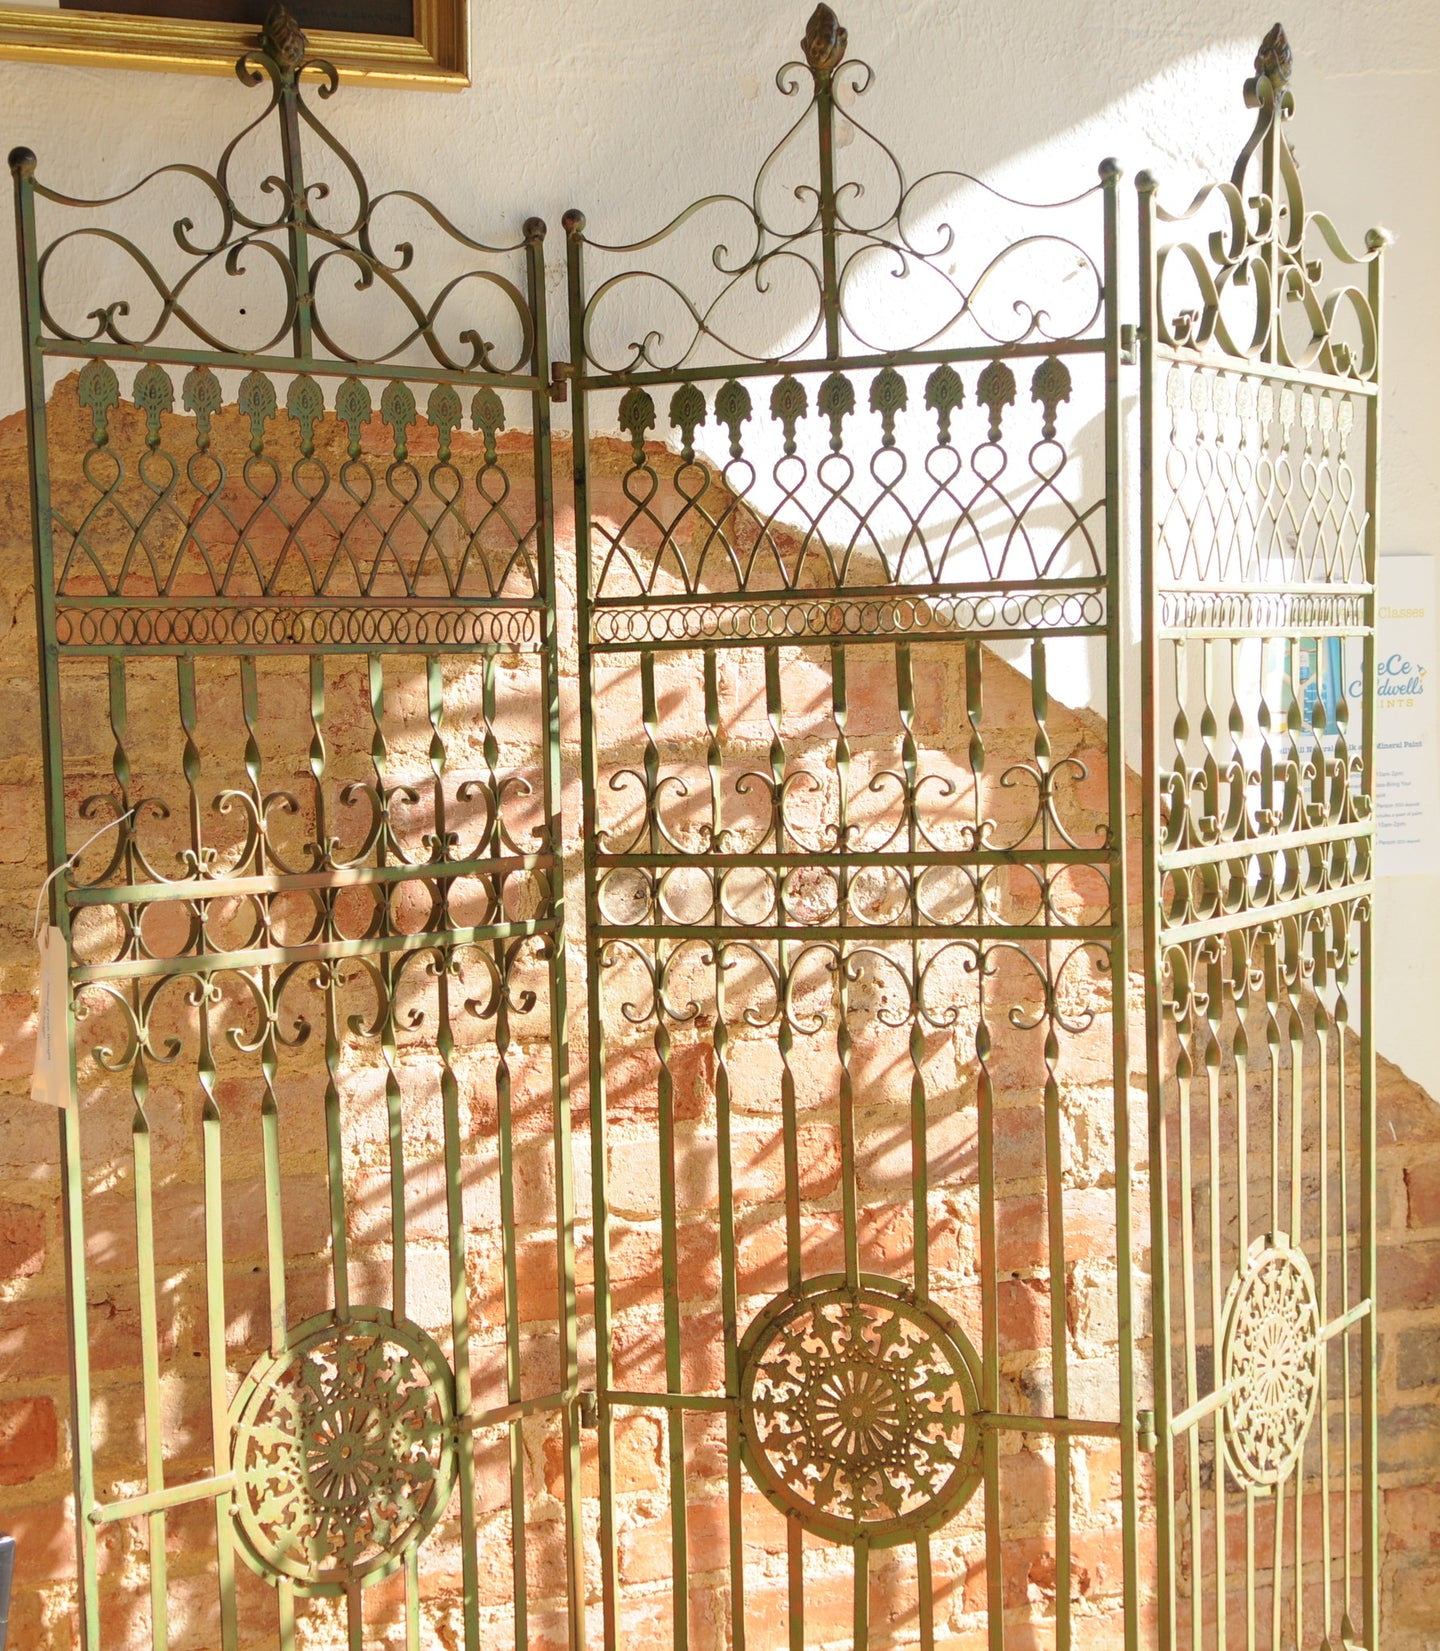 Antique French Wrought Iron Screen/Architectural  Piece - Chestnut Lane Antiques & Interiors - 1